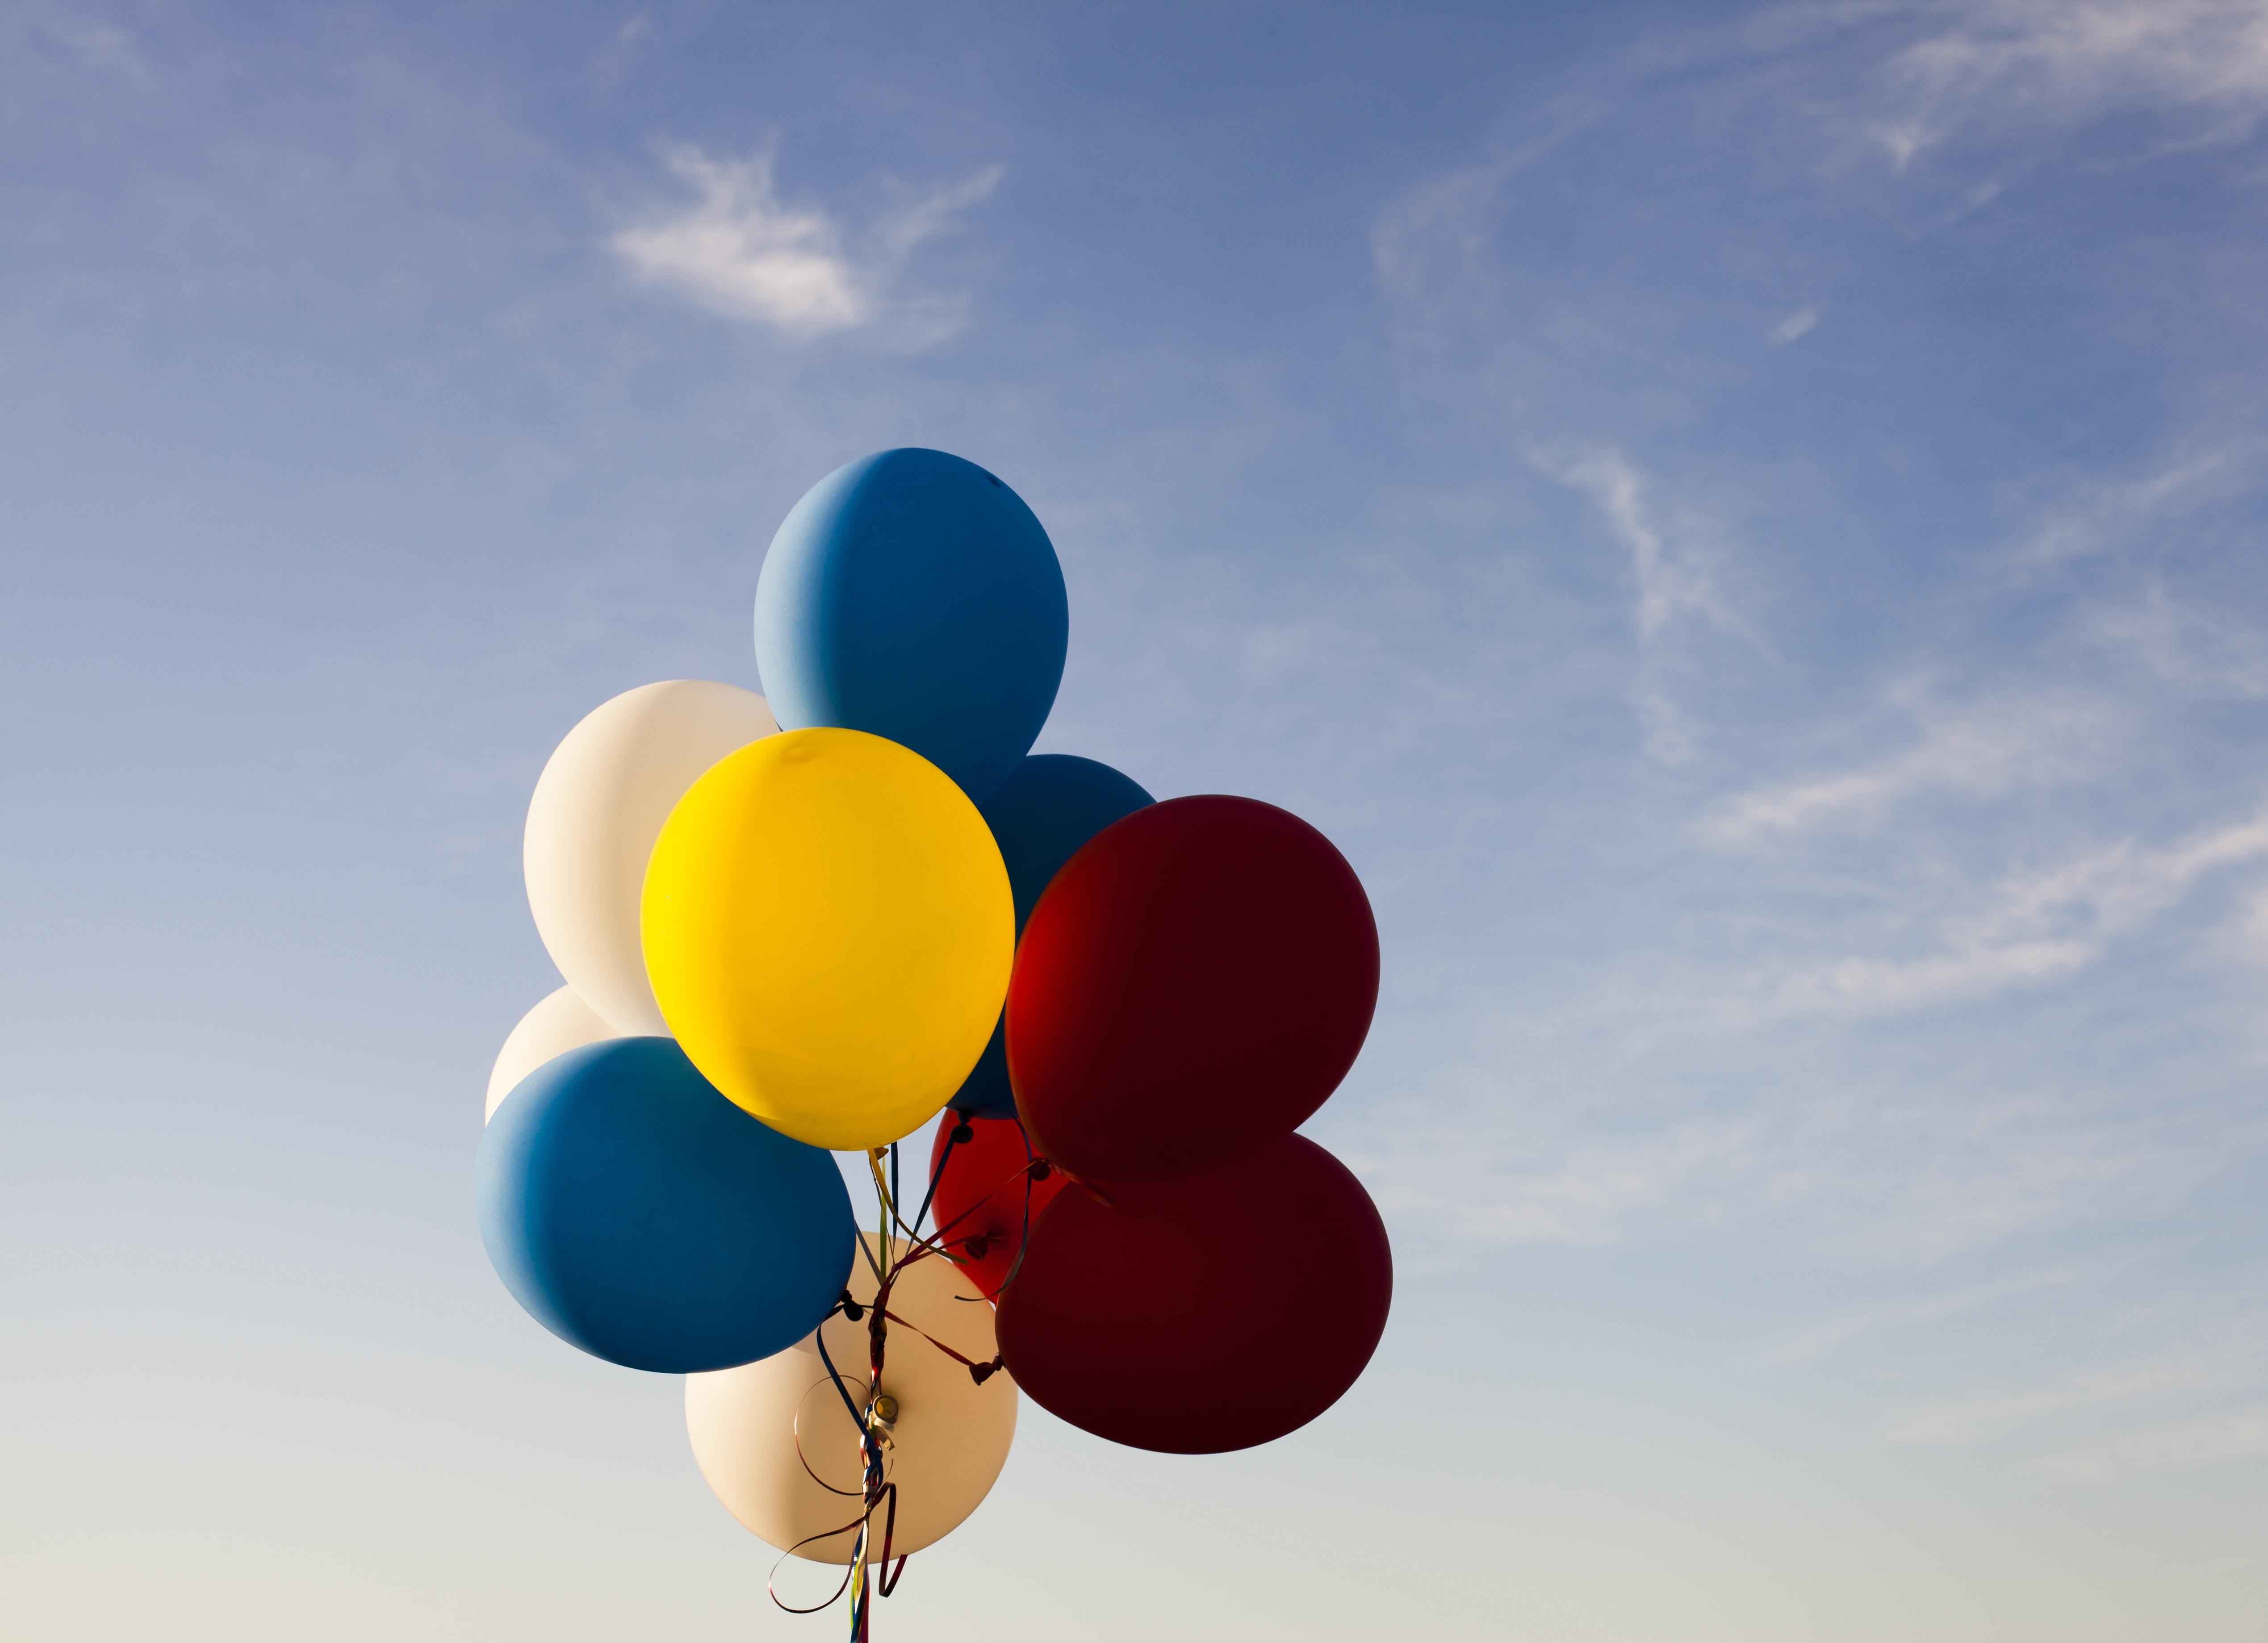 white, yellow, red, and blue balloons under blue sky